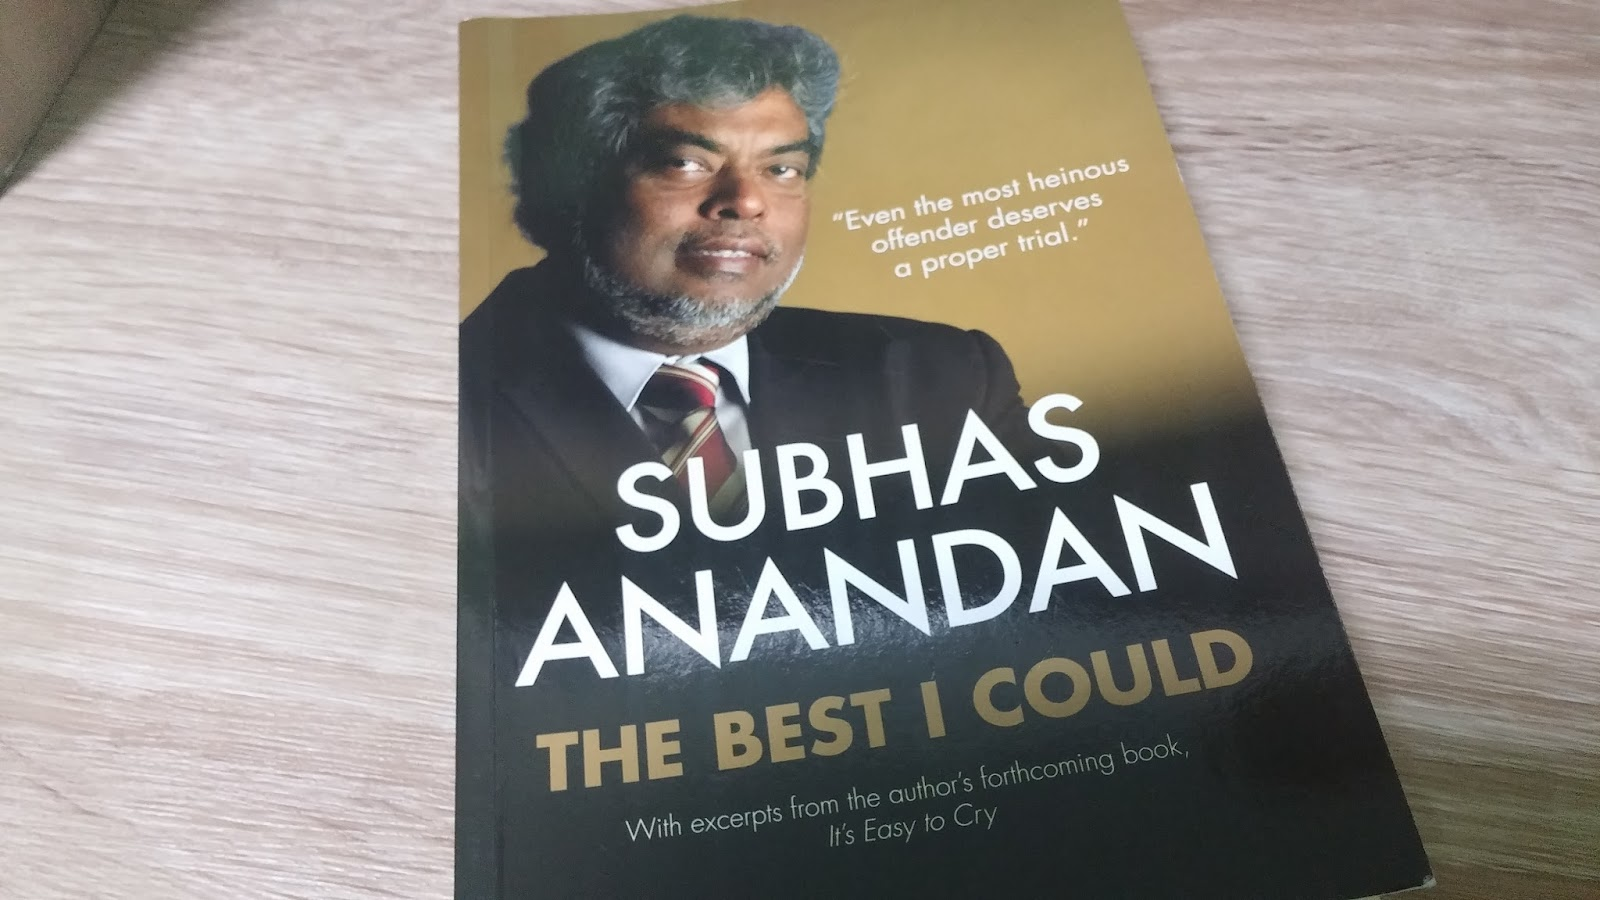 The best i could subhas anandan